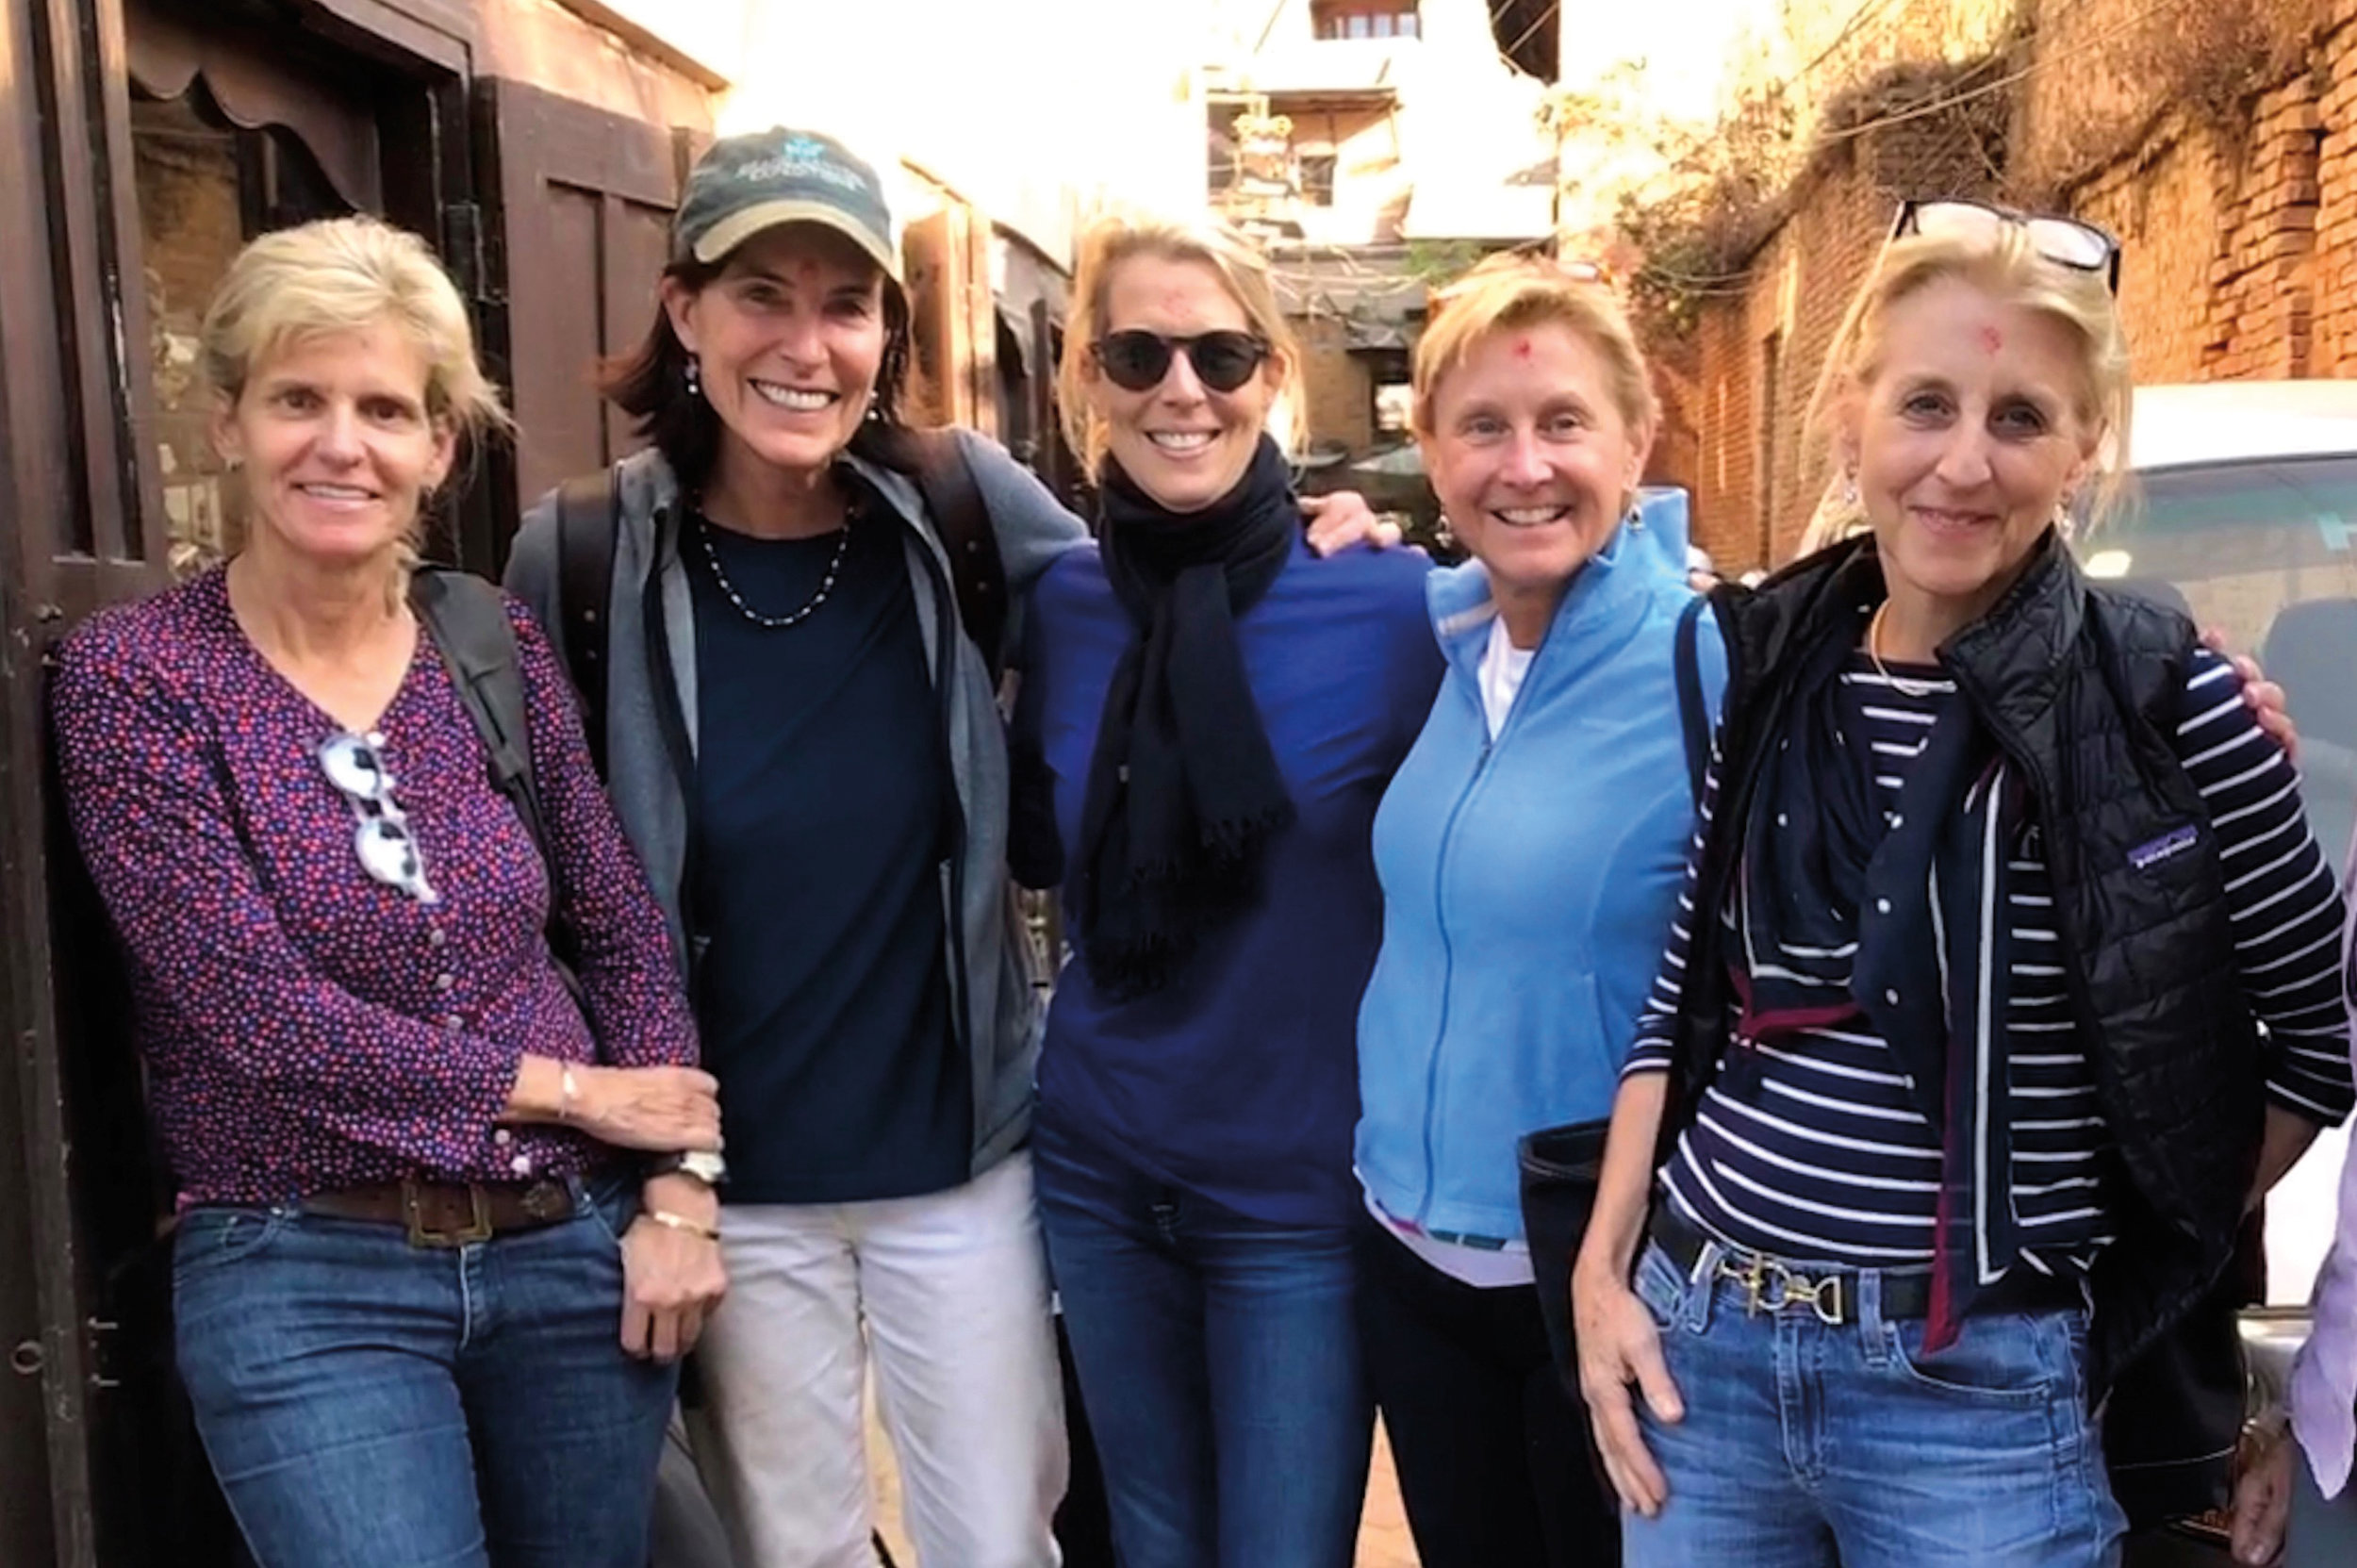 Lisa Kent Nitze '78, Lisa Henriques Hughes '78, and Electra McDowell Lang '78 (c.), flanked by two of their fellow trekkers in Kathmandu, Nepal.